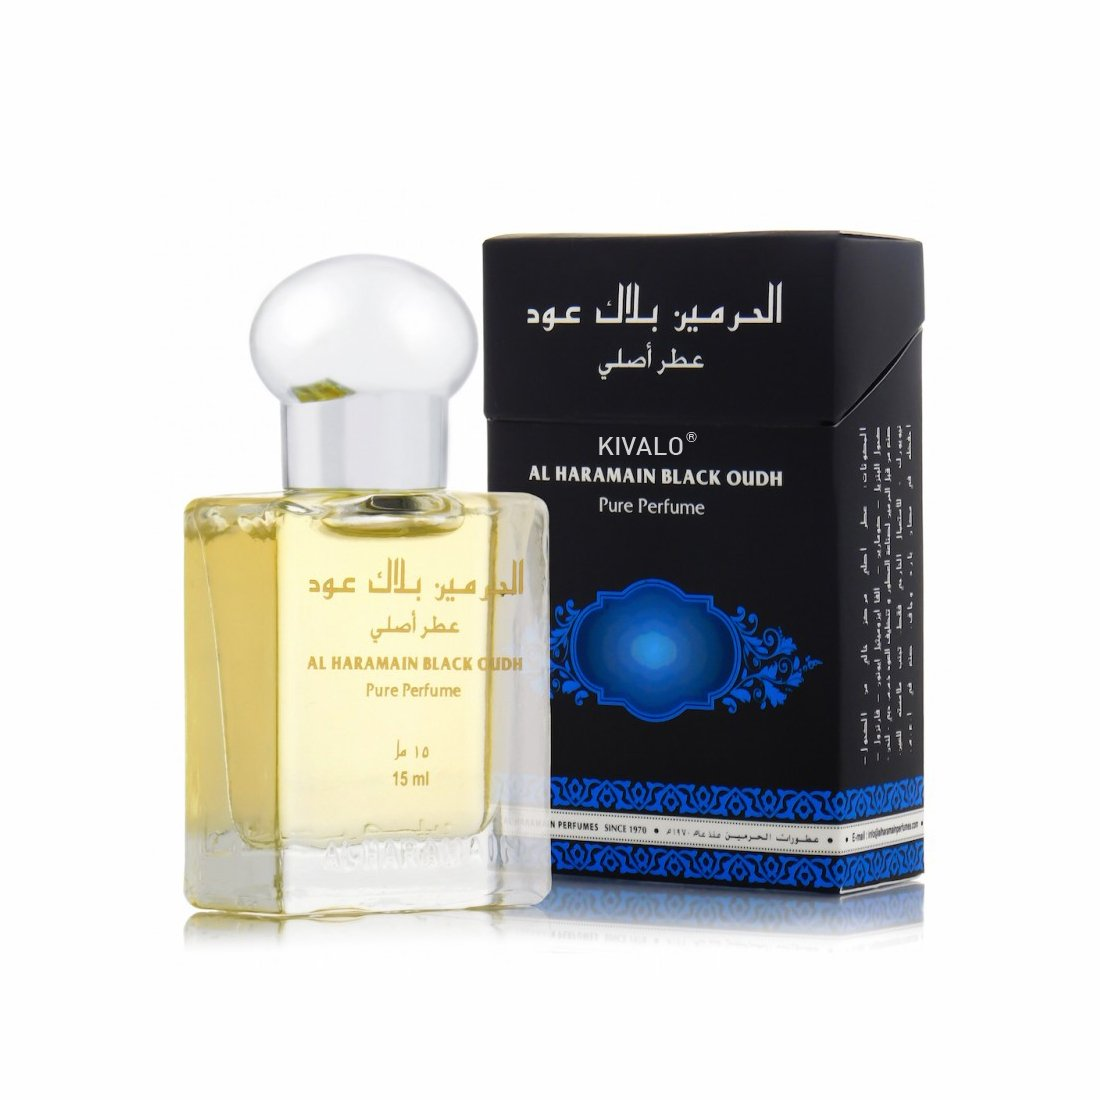 Al Haramain Black Oudh & Forever Roll on Pack of 2 Attar - 2 x 15ml